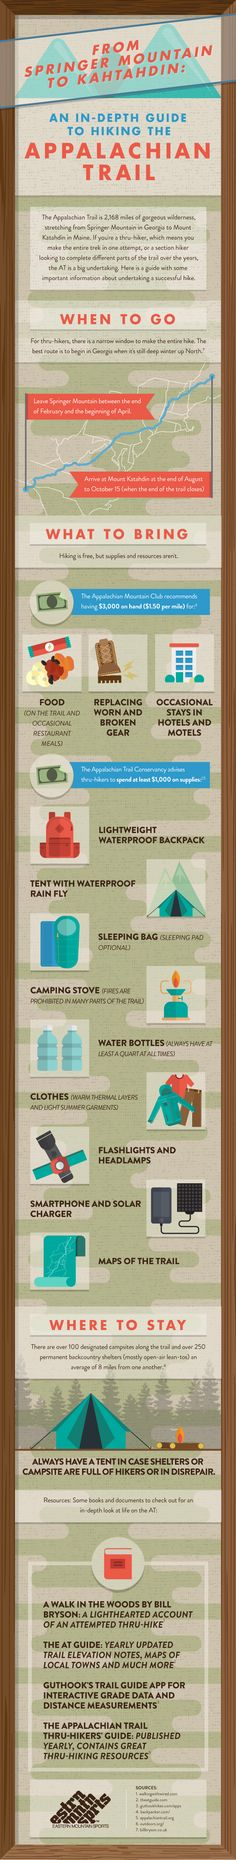 Guide to hiking the #AppalachianTrail.  #AT #Hiking